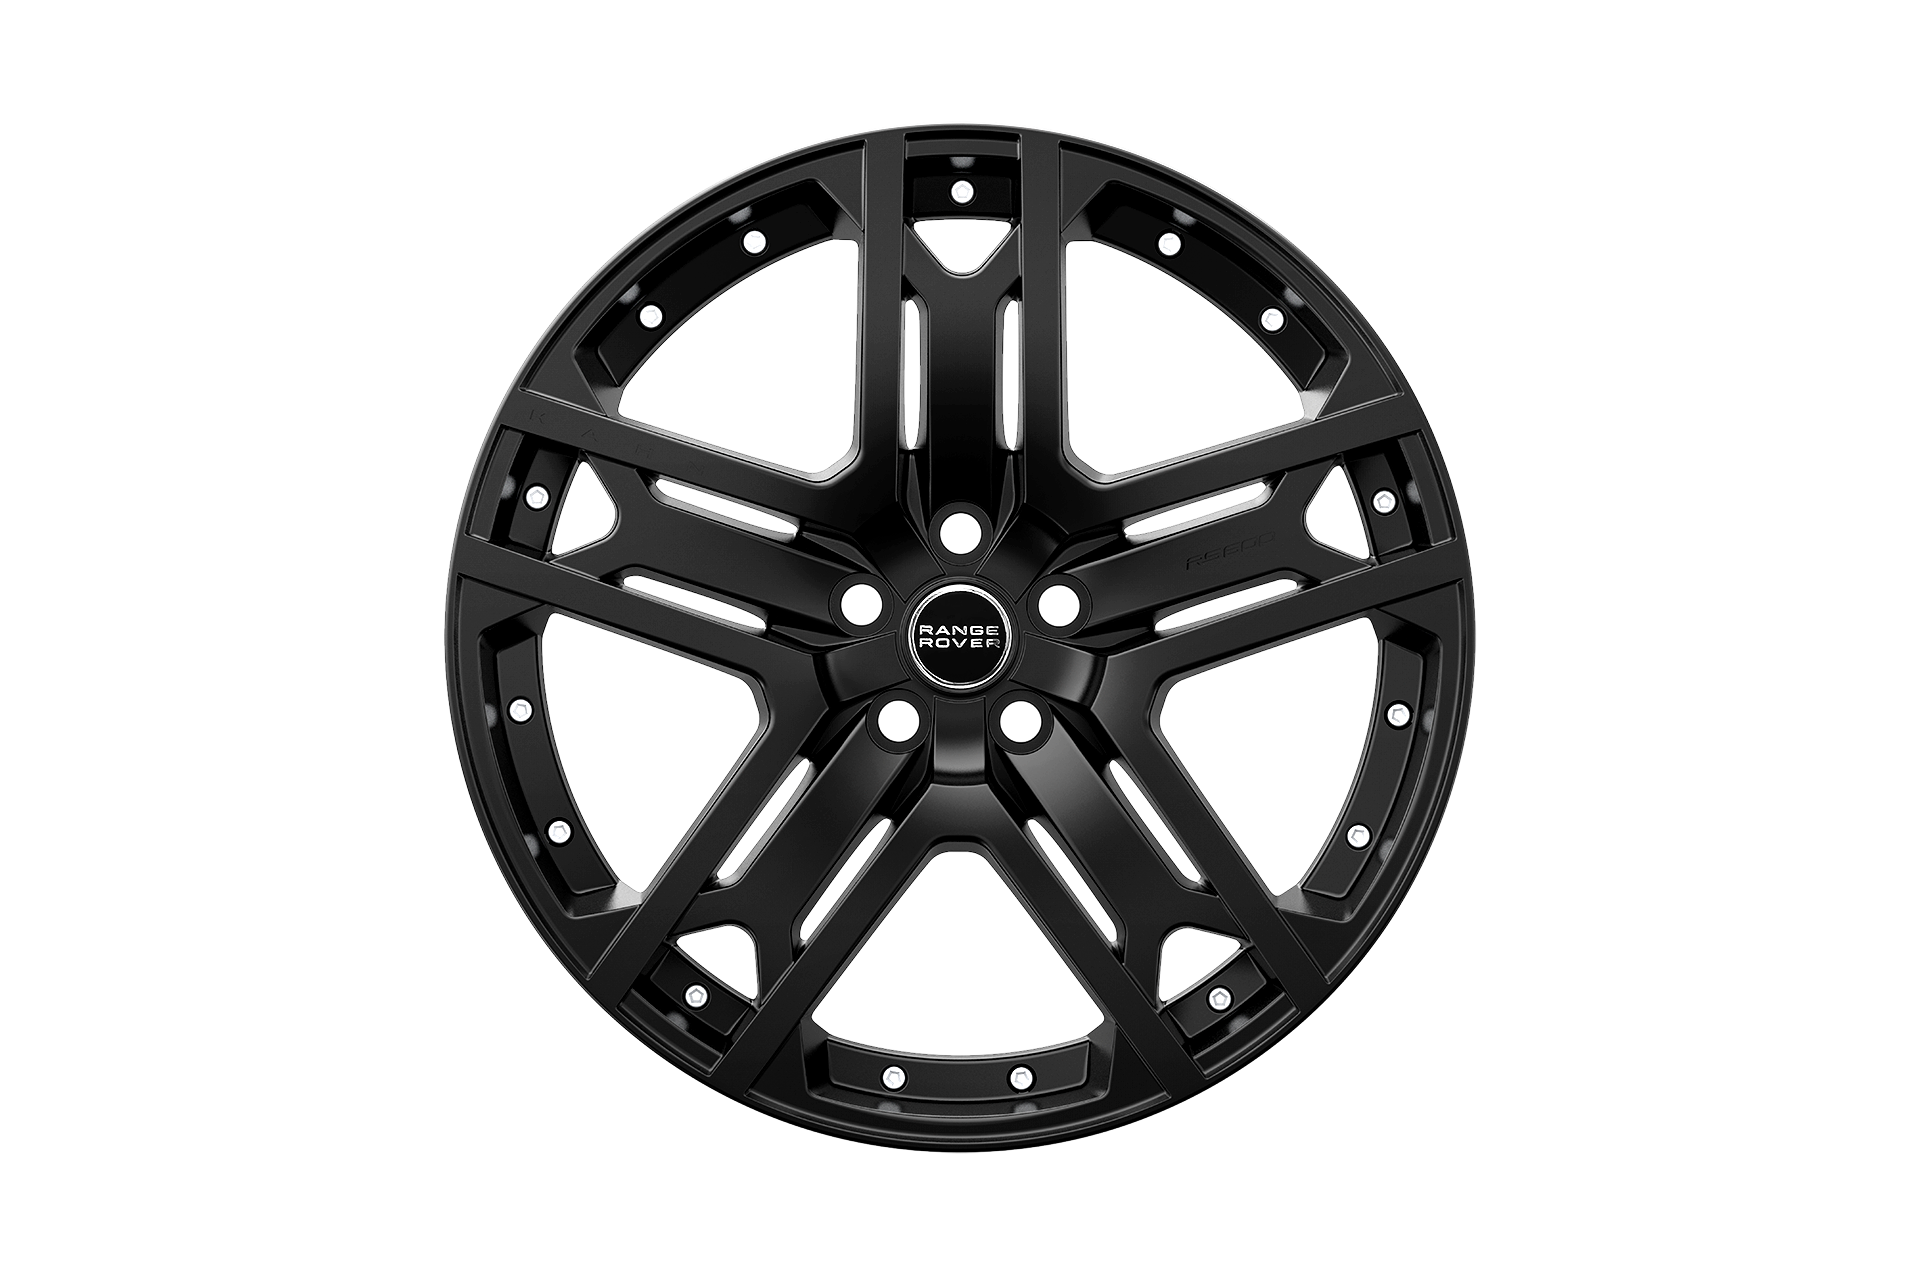 Land Rover Discovery (2004-2016) Rs600 Light Alloy Wheels Image 5019